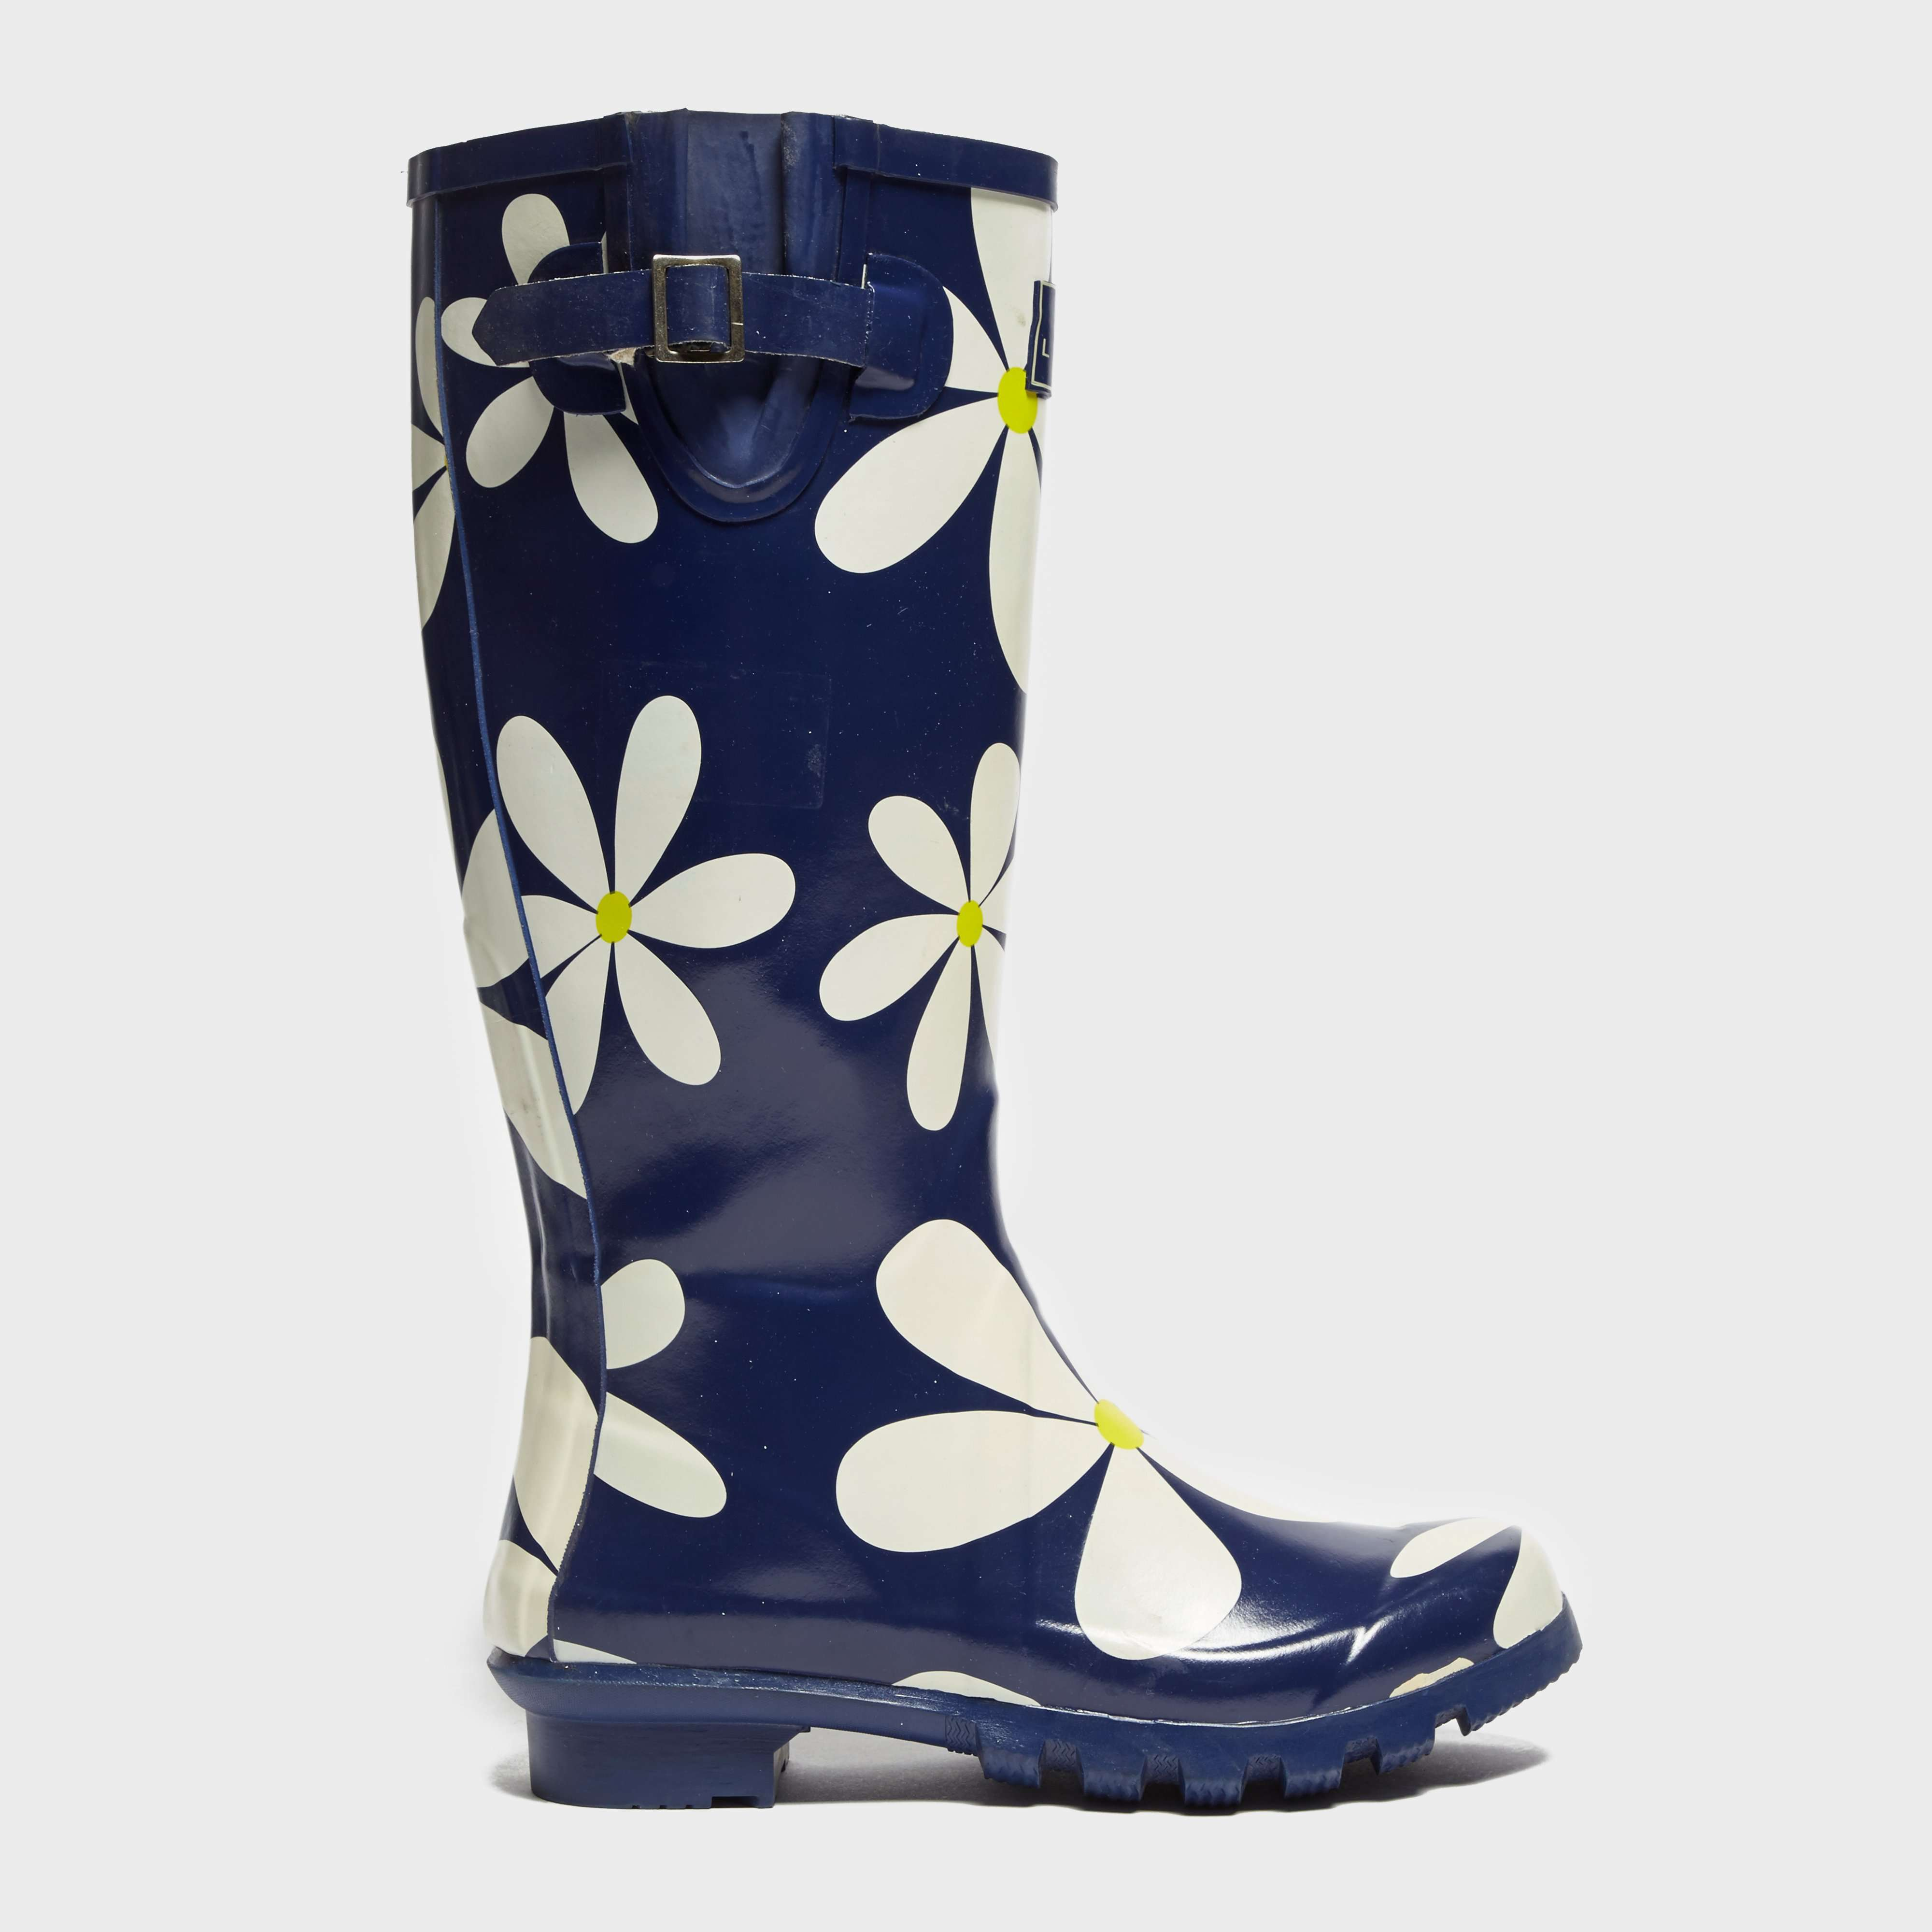 O.B. Women's Patterned Wellies